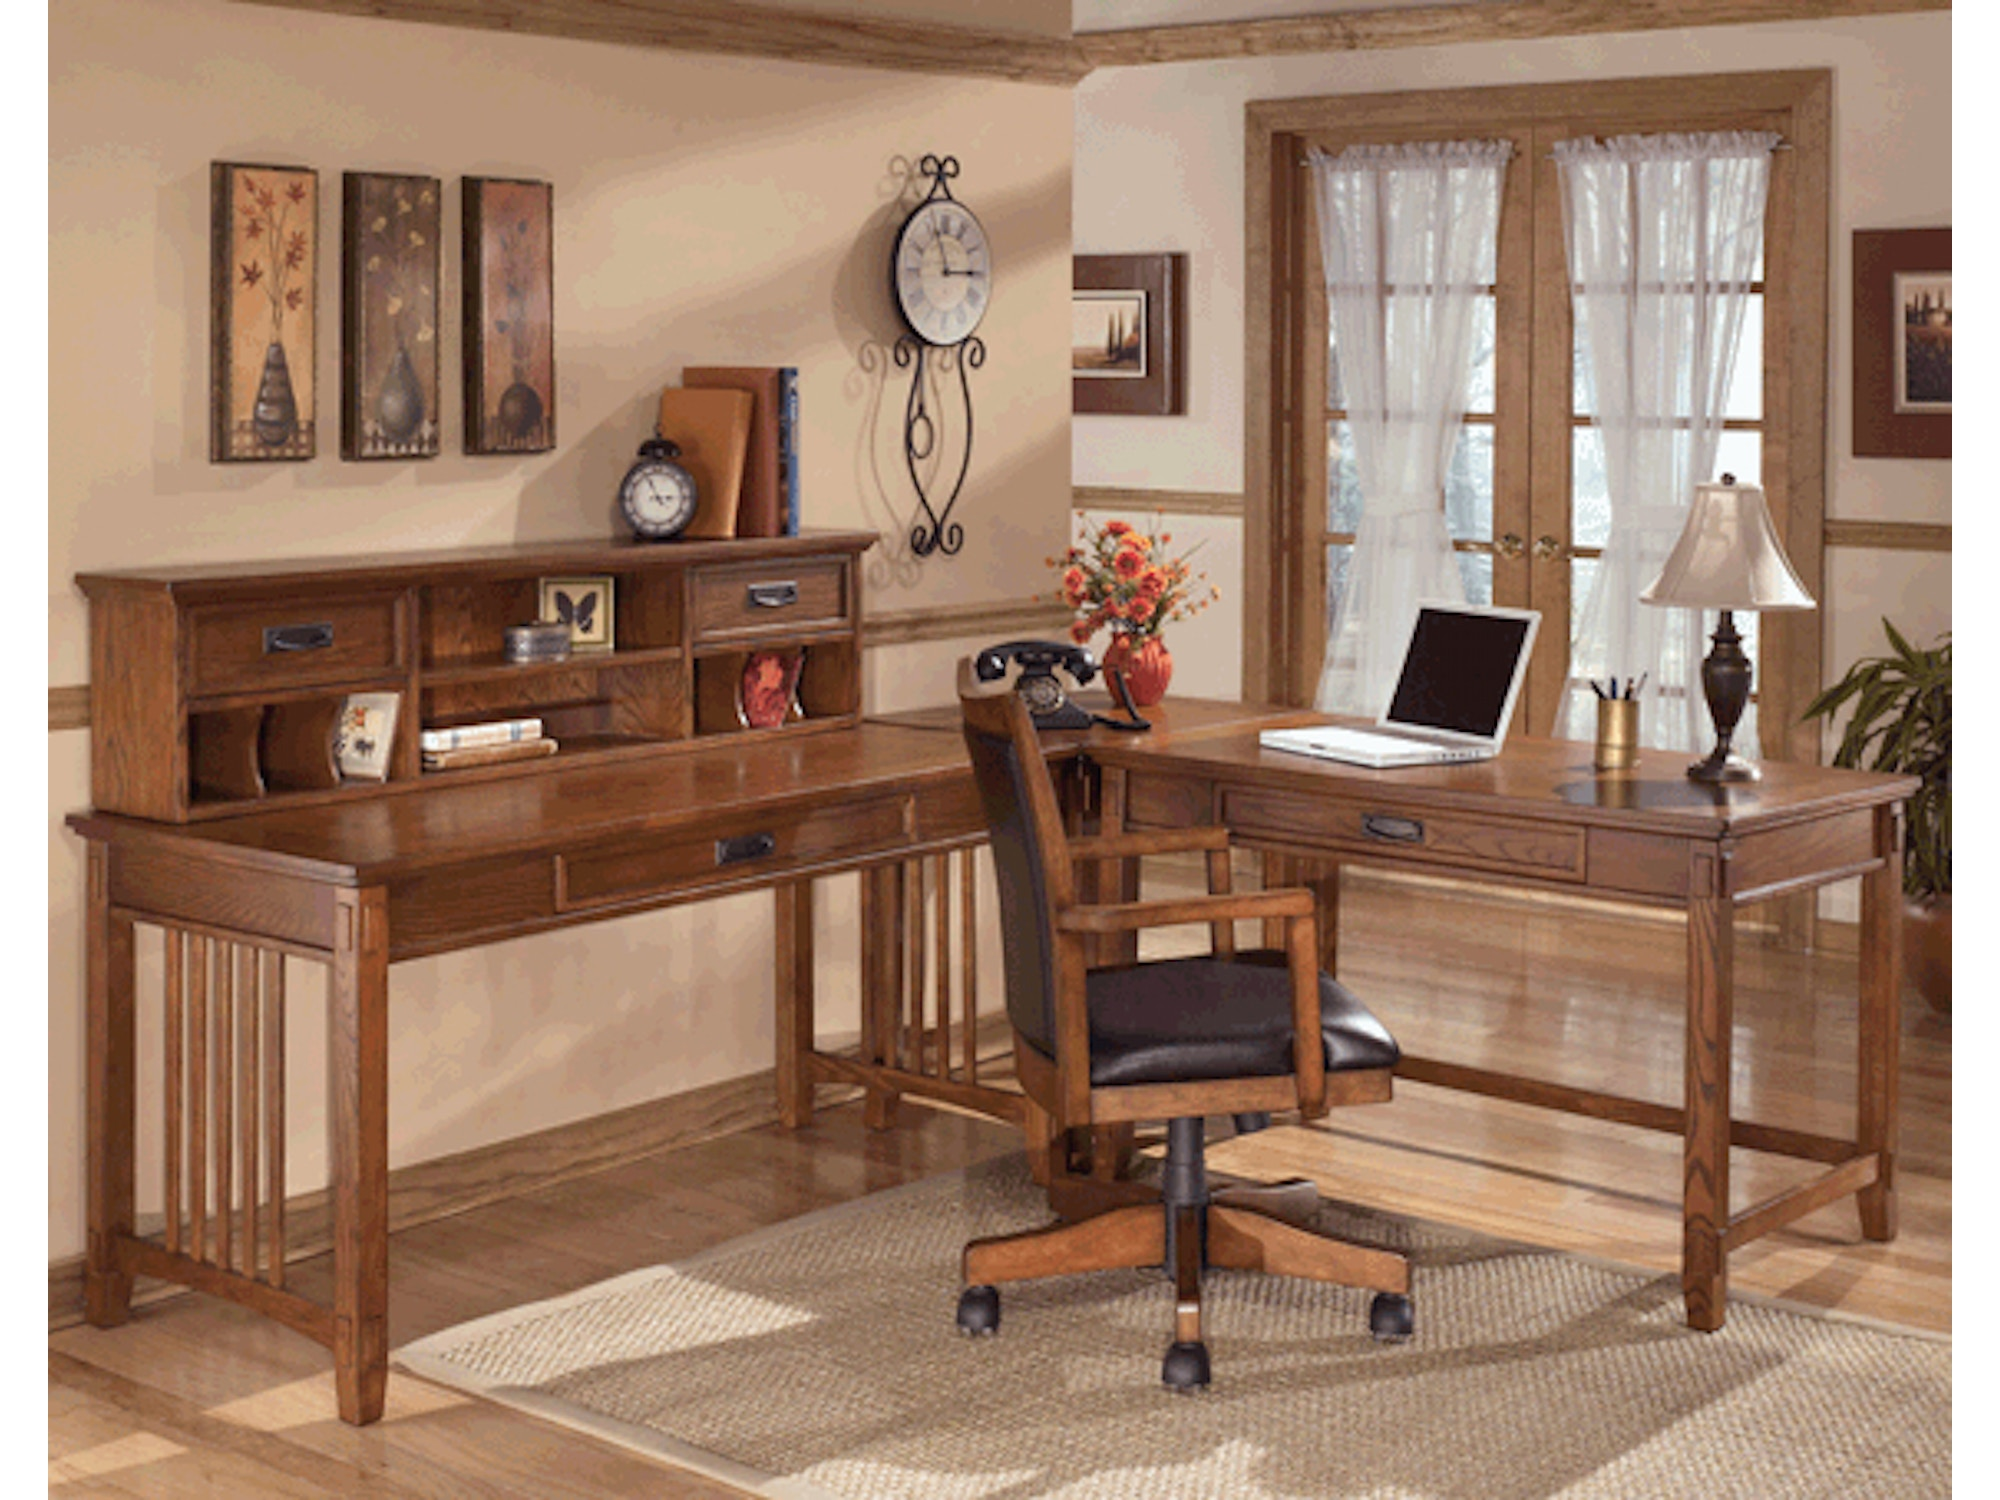 Cross Island Home Office - Petite 189623